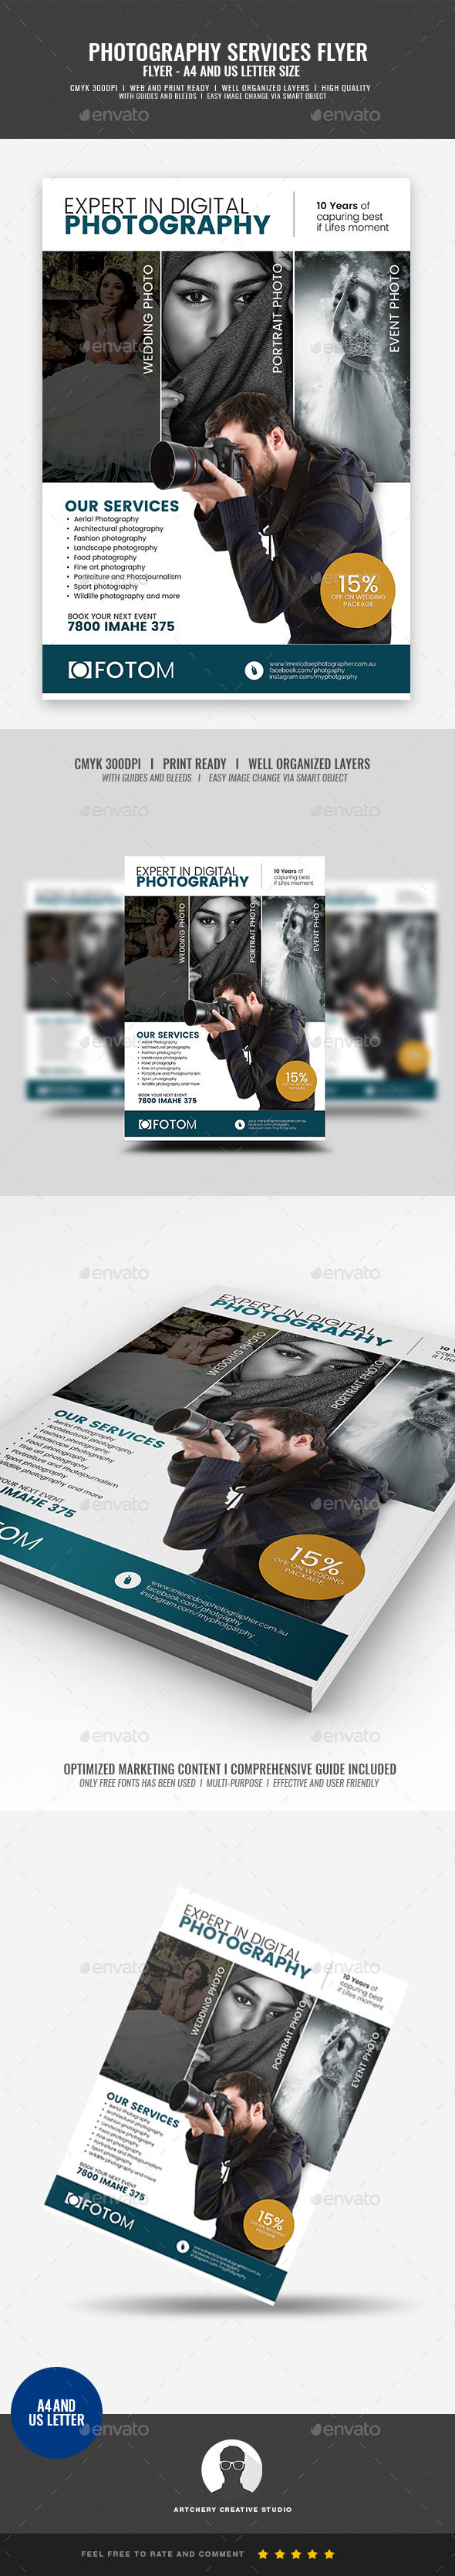 Digital Photography Services Flyer - Corporate Flyers